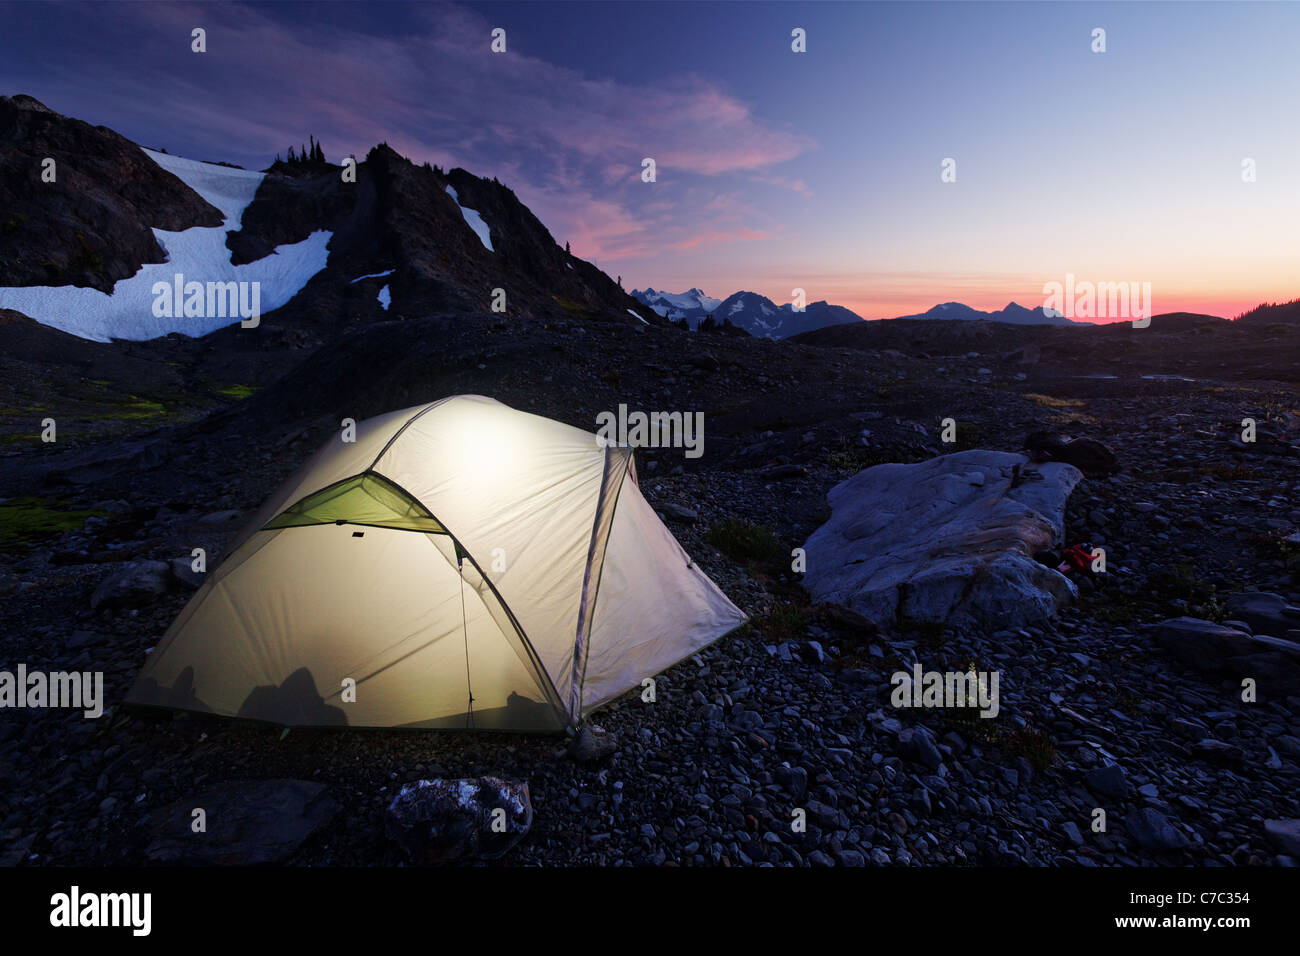 Backpacker's tent in upper Ferry Basin, Bailey Range Traverse, Olympic National Park, Washington - Stock Image